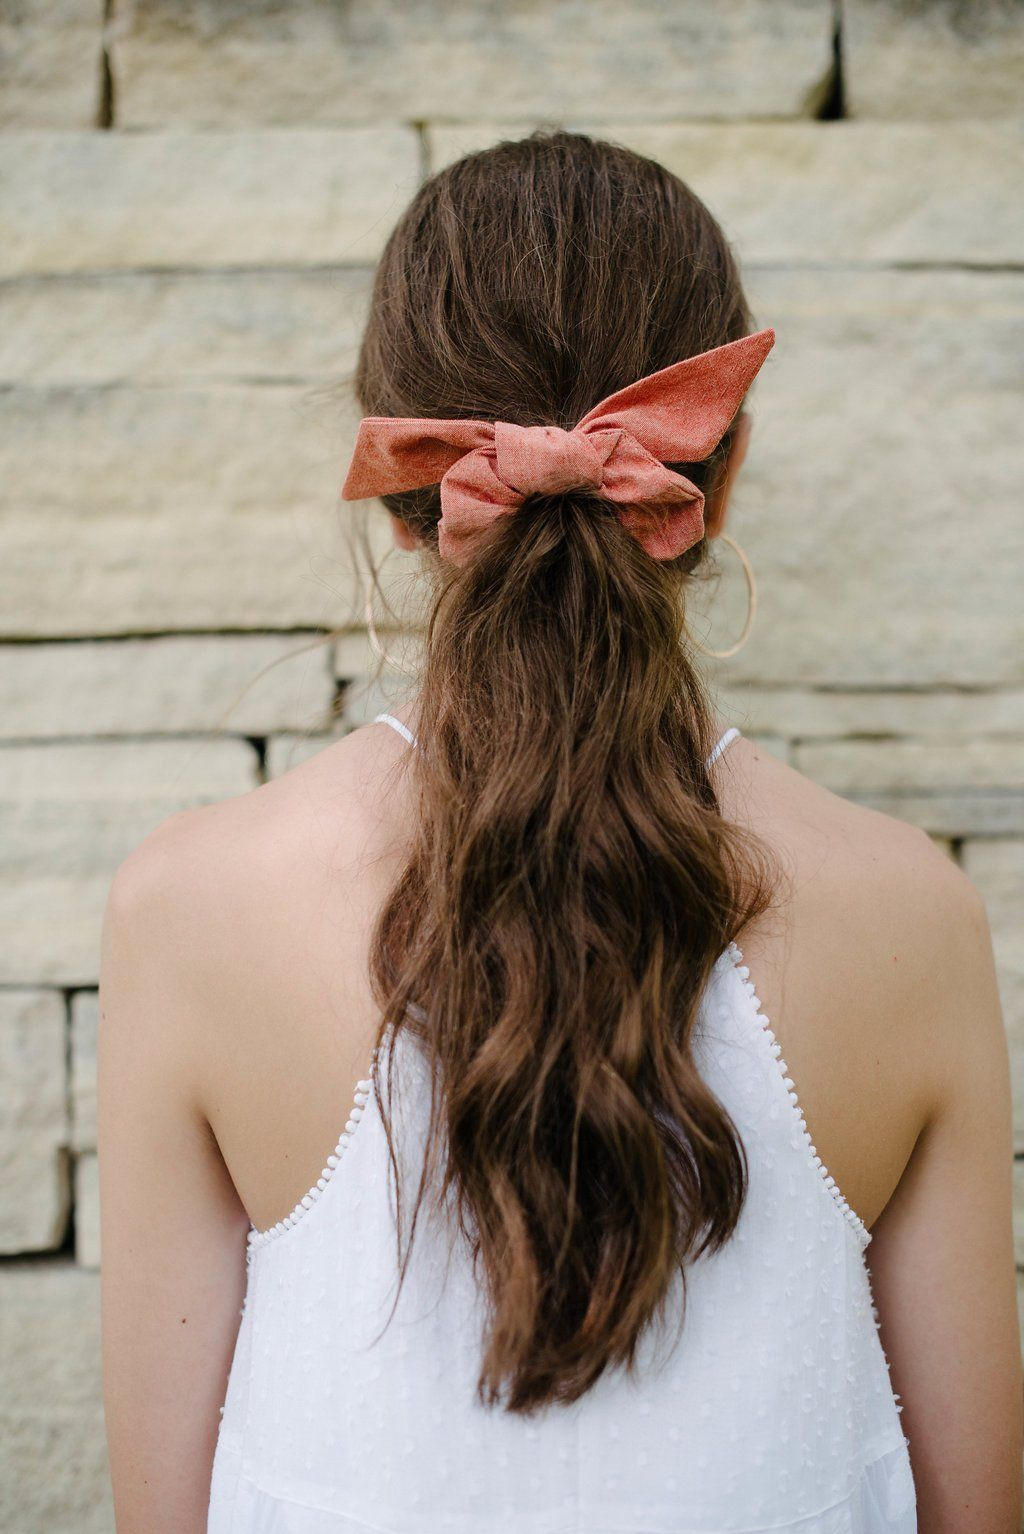 Terracotta Scrunchie Scrunchie Hairstyles Top Knot Hairstyles Hair Ribbons